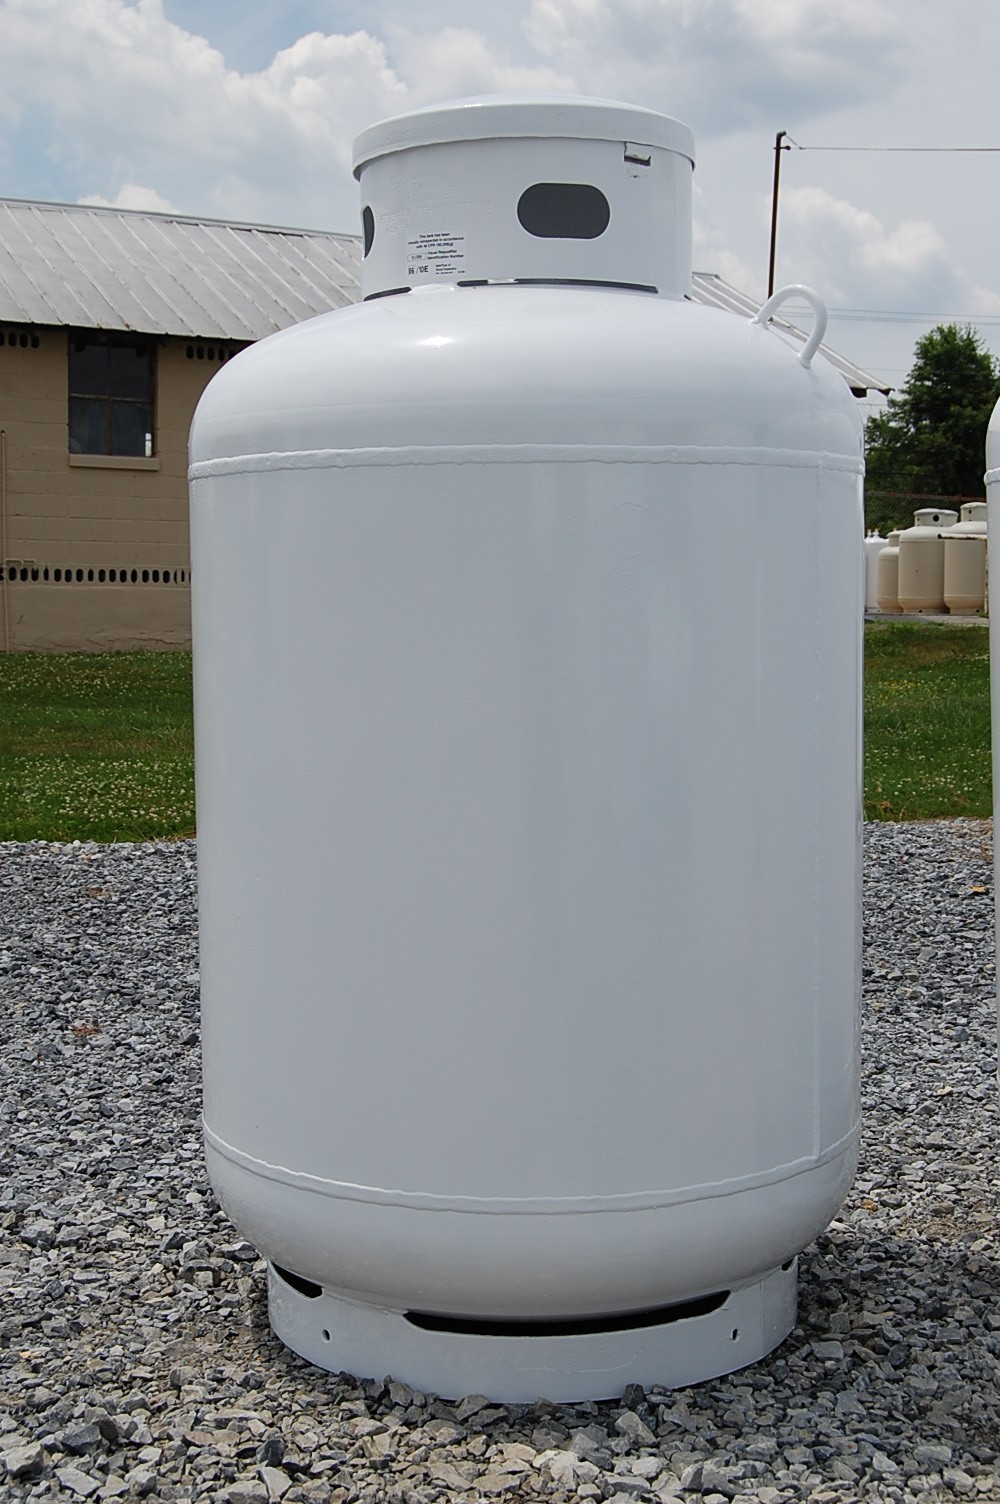 Aboveground Propane Tank Monitoring